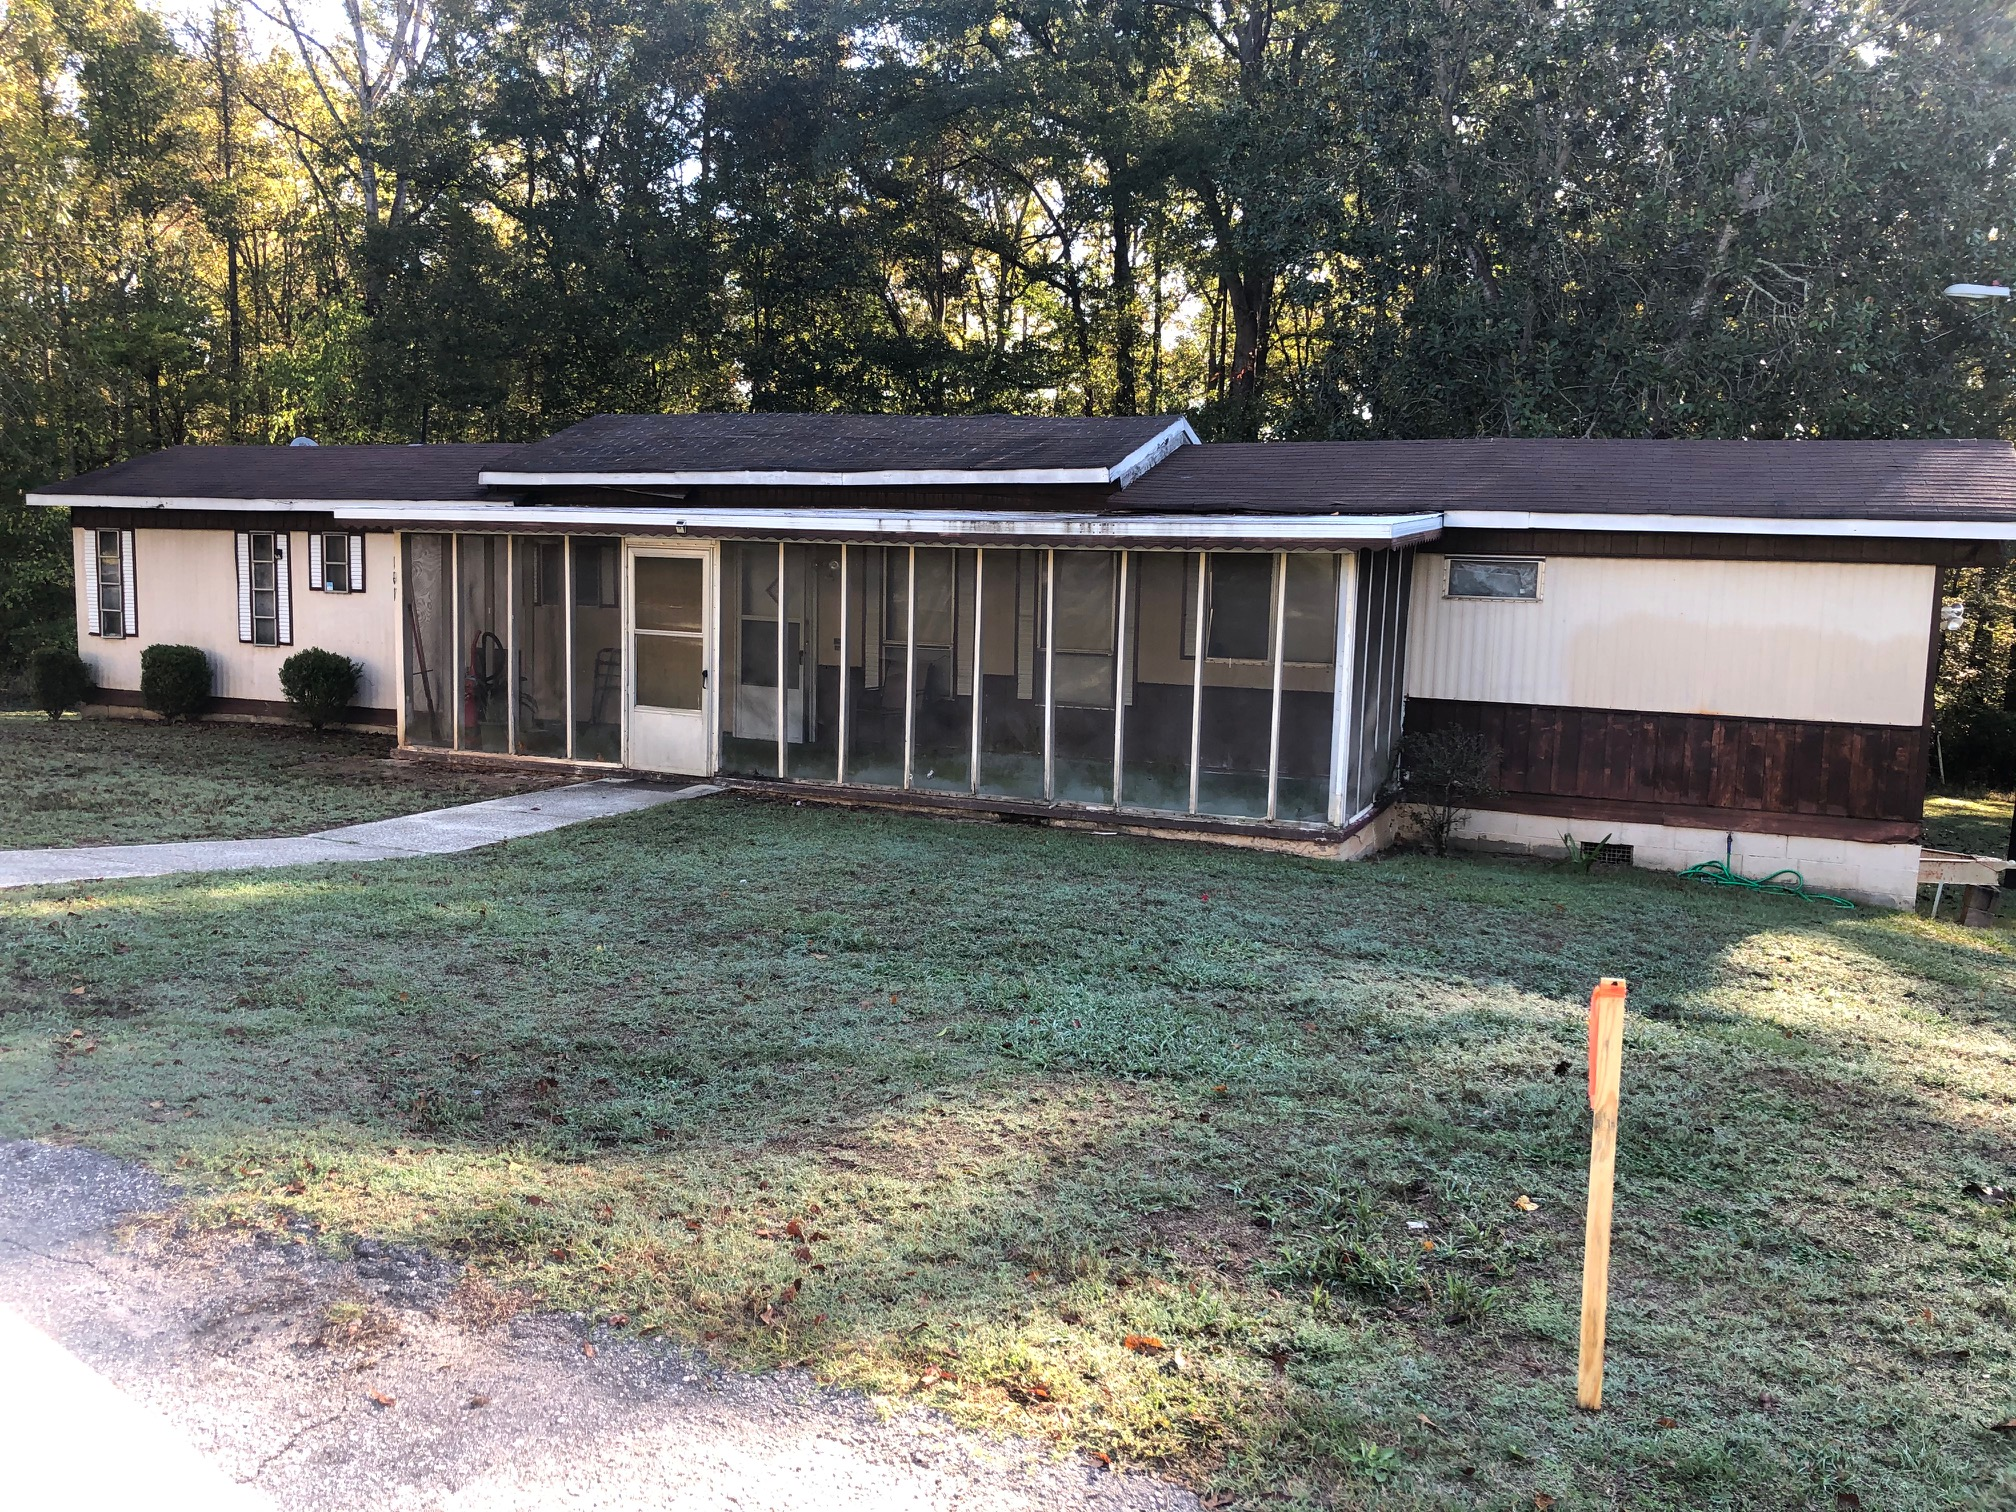 209 Shoals Rd (Image - 3)